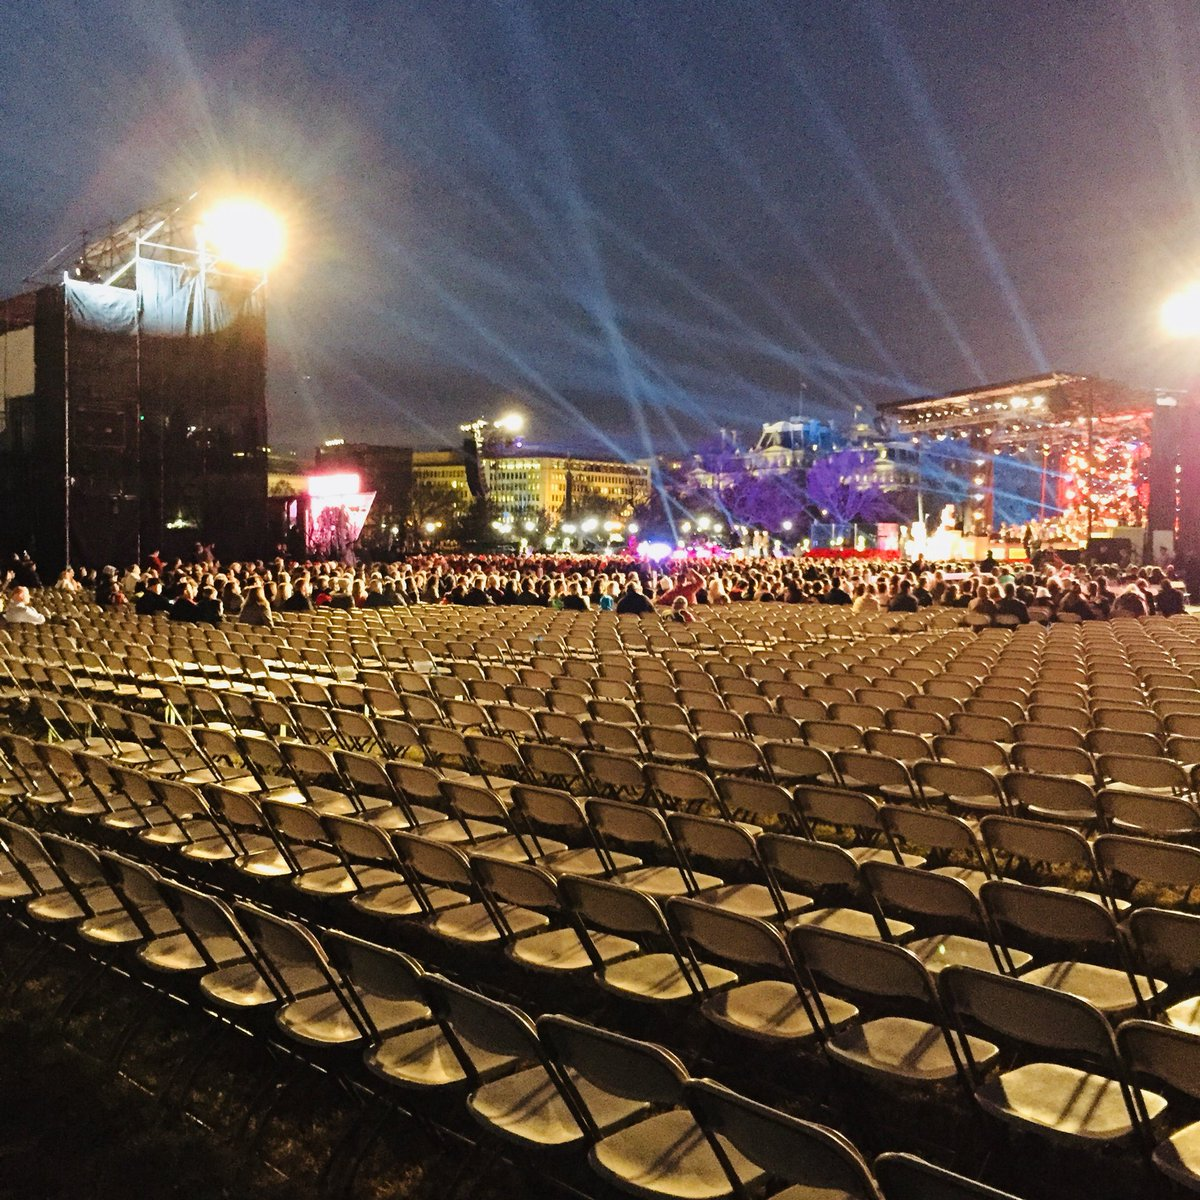 Image result for empty seats in washington christmas tree ceremonies